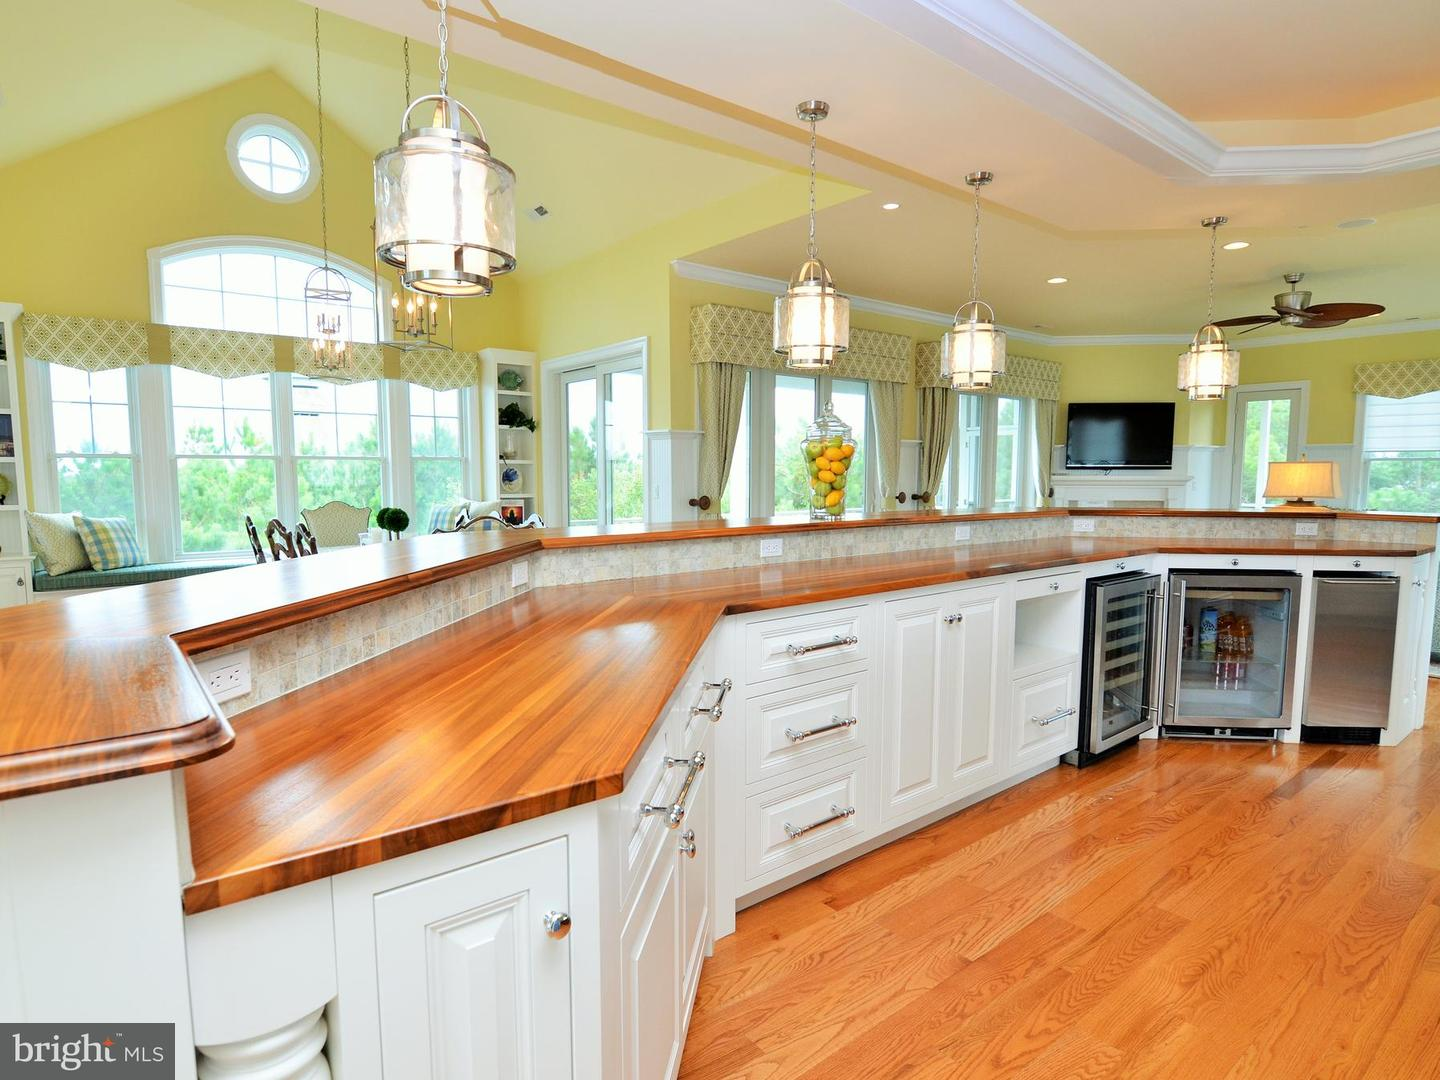 1002293530-300500807888-2018-09-25-15-08-25 31 Hall Ave | Rehoboth Beach, DE Real Estate For Sale | MLS# 1002293530  - 1st Choice Properties